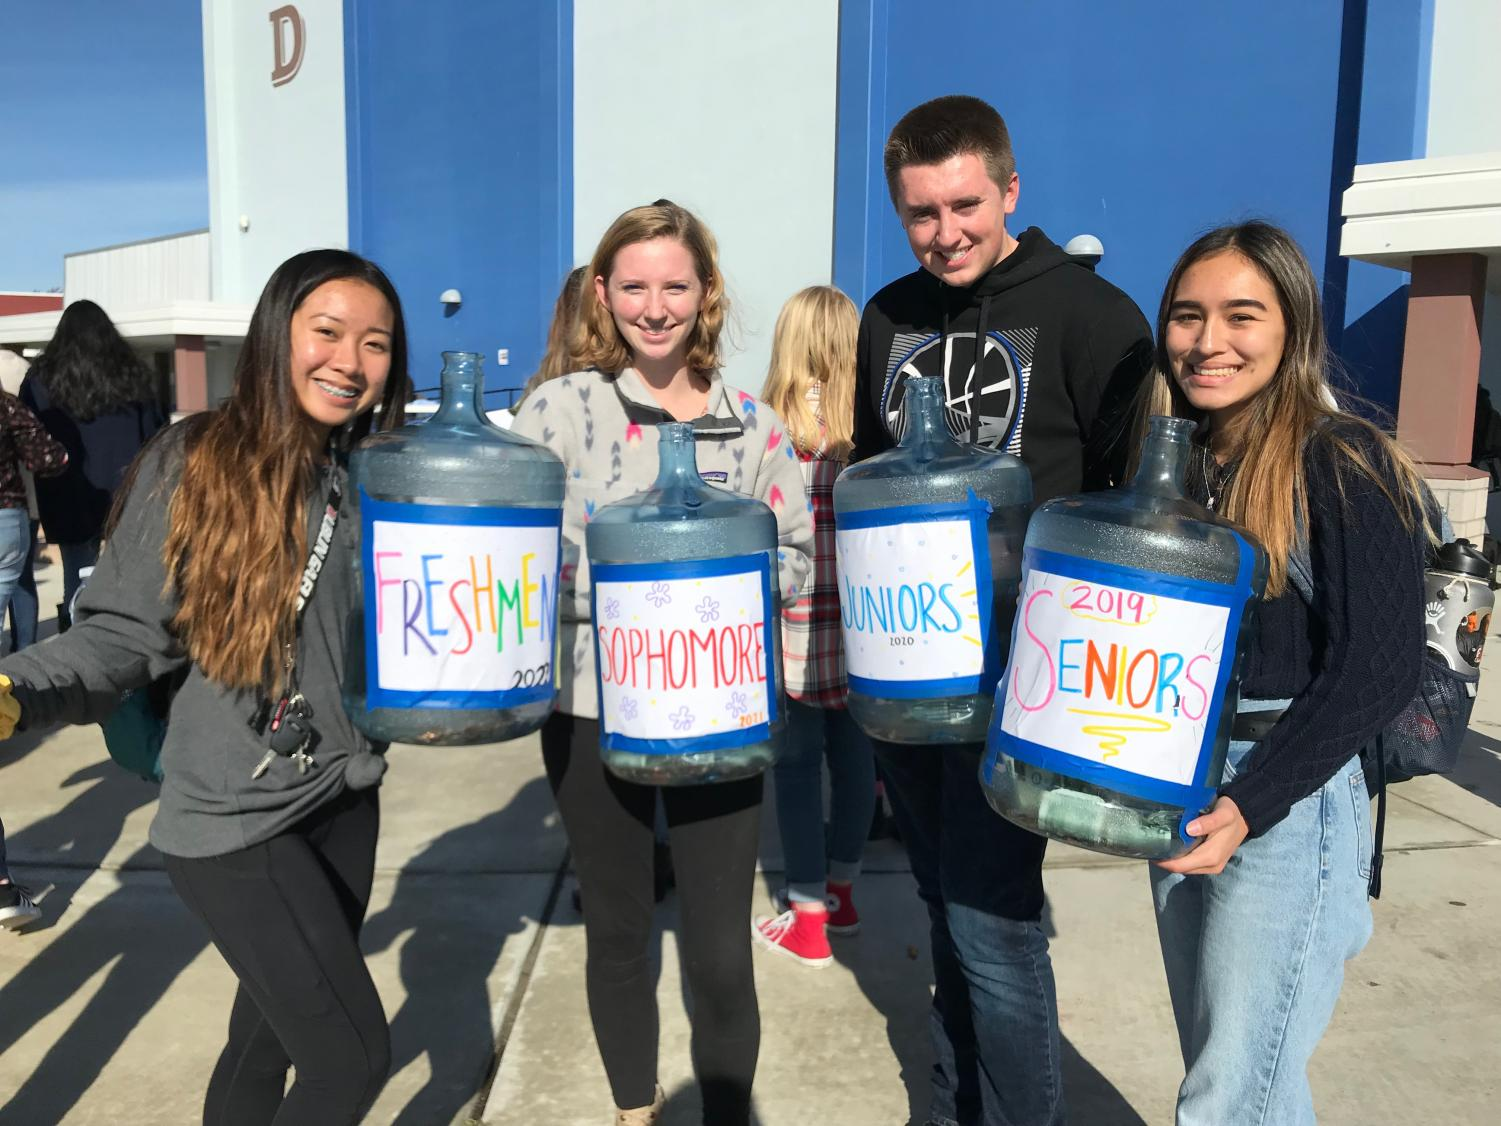 Leadership students collected donations from students based on their grades. While most students wanted to donate and support those impacted by the fires regardless, the class competition provided an increased motivation.